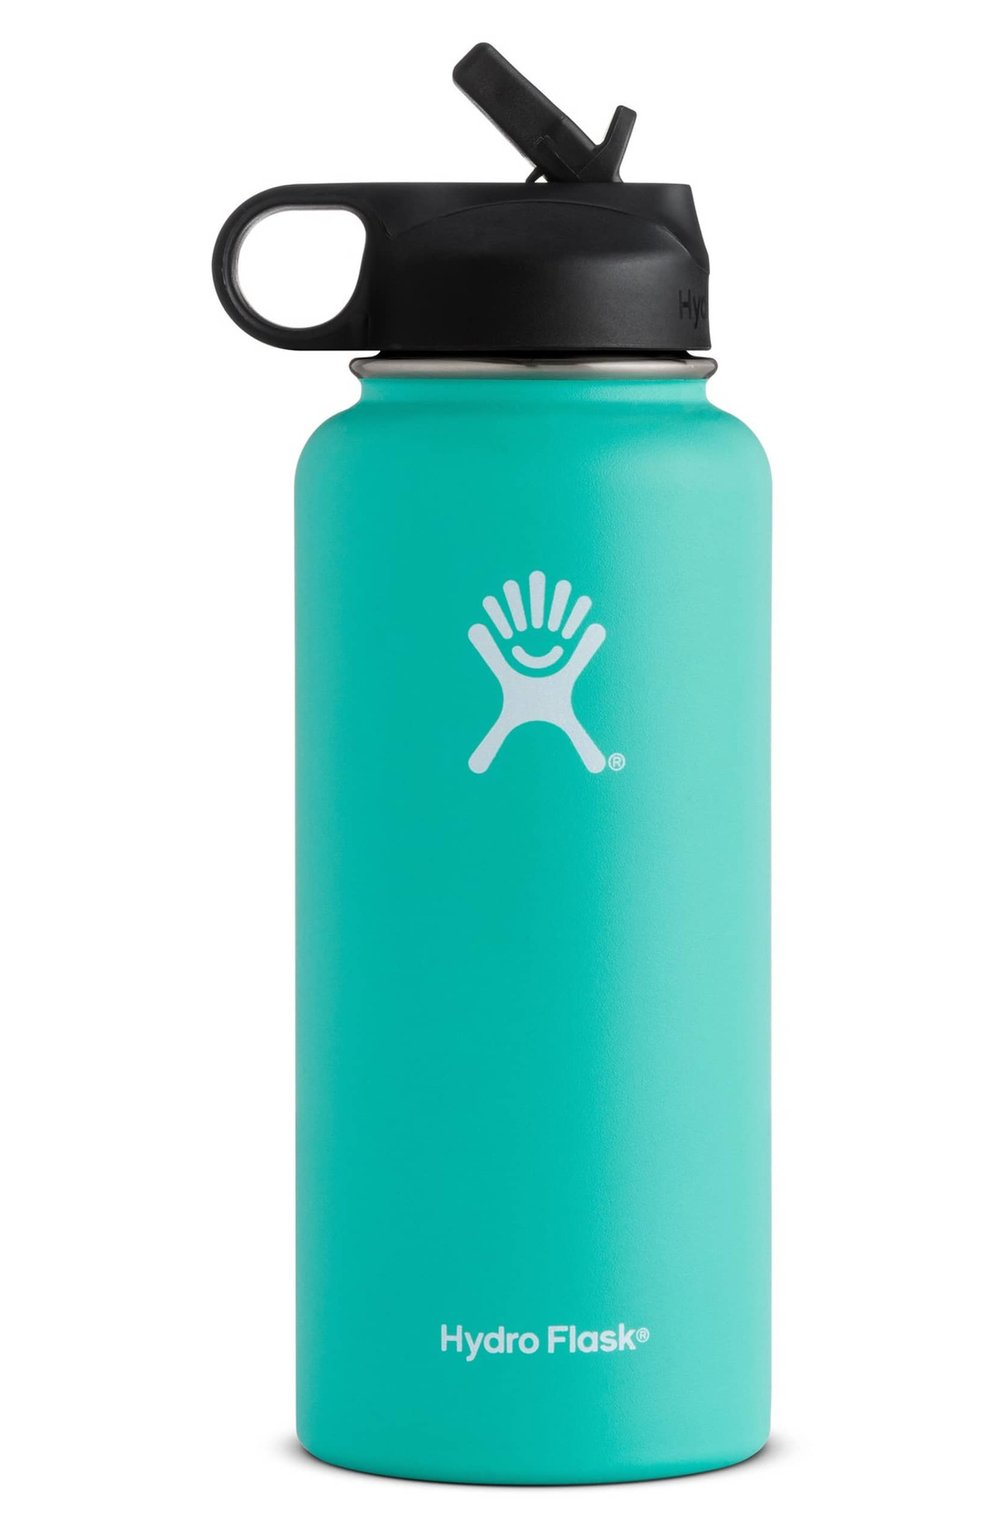 Hydro Flask, the best reusable water bottle